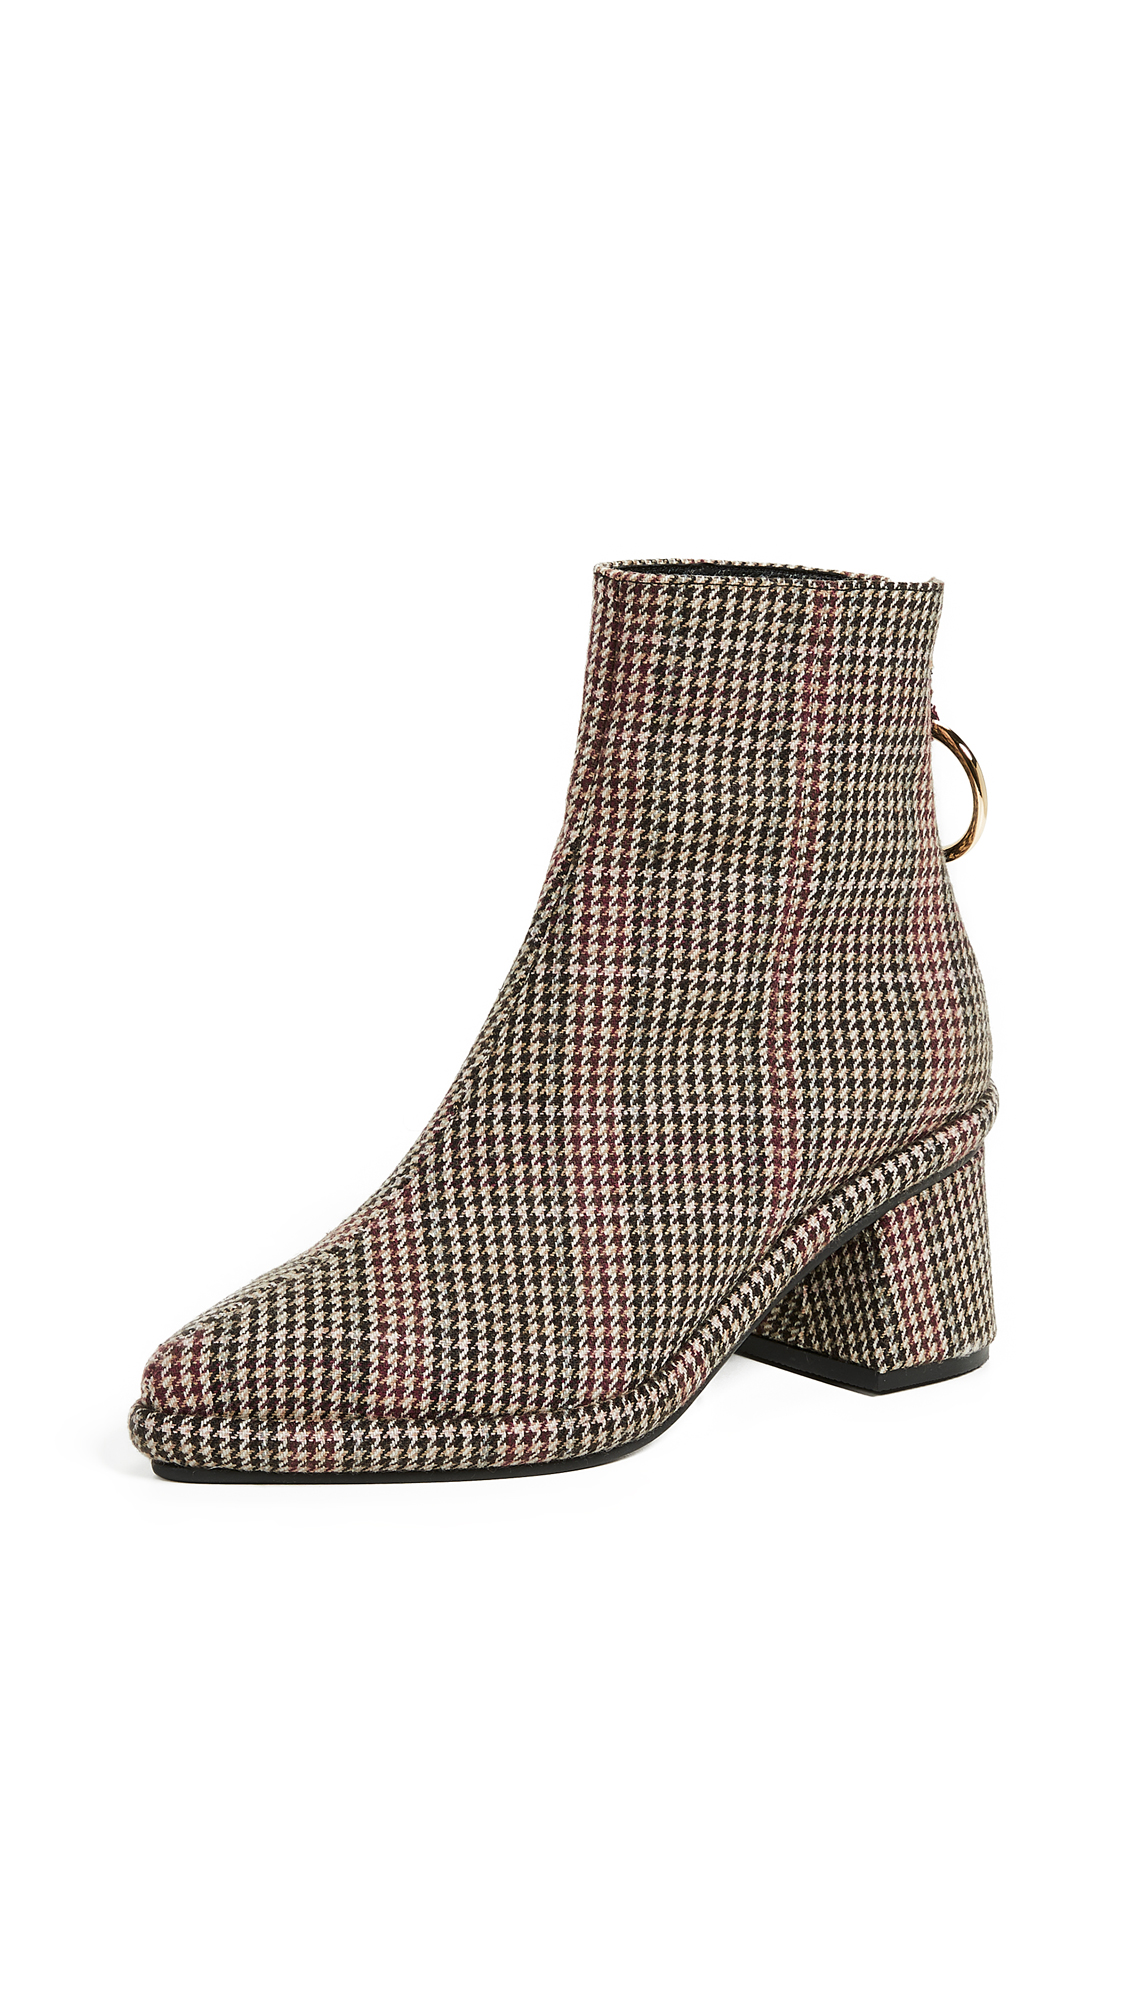 Reike Nen Ring Slim Booties In Check